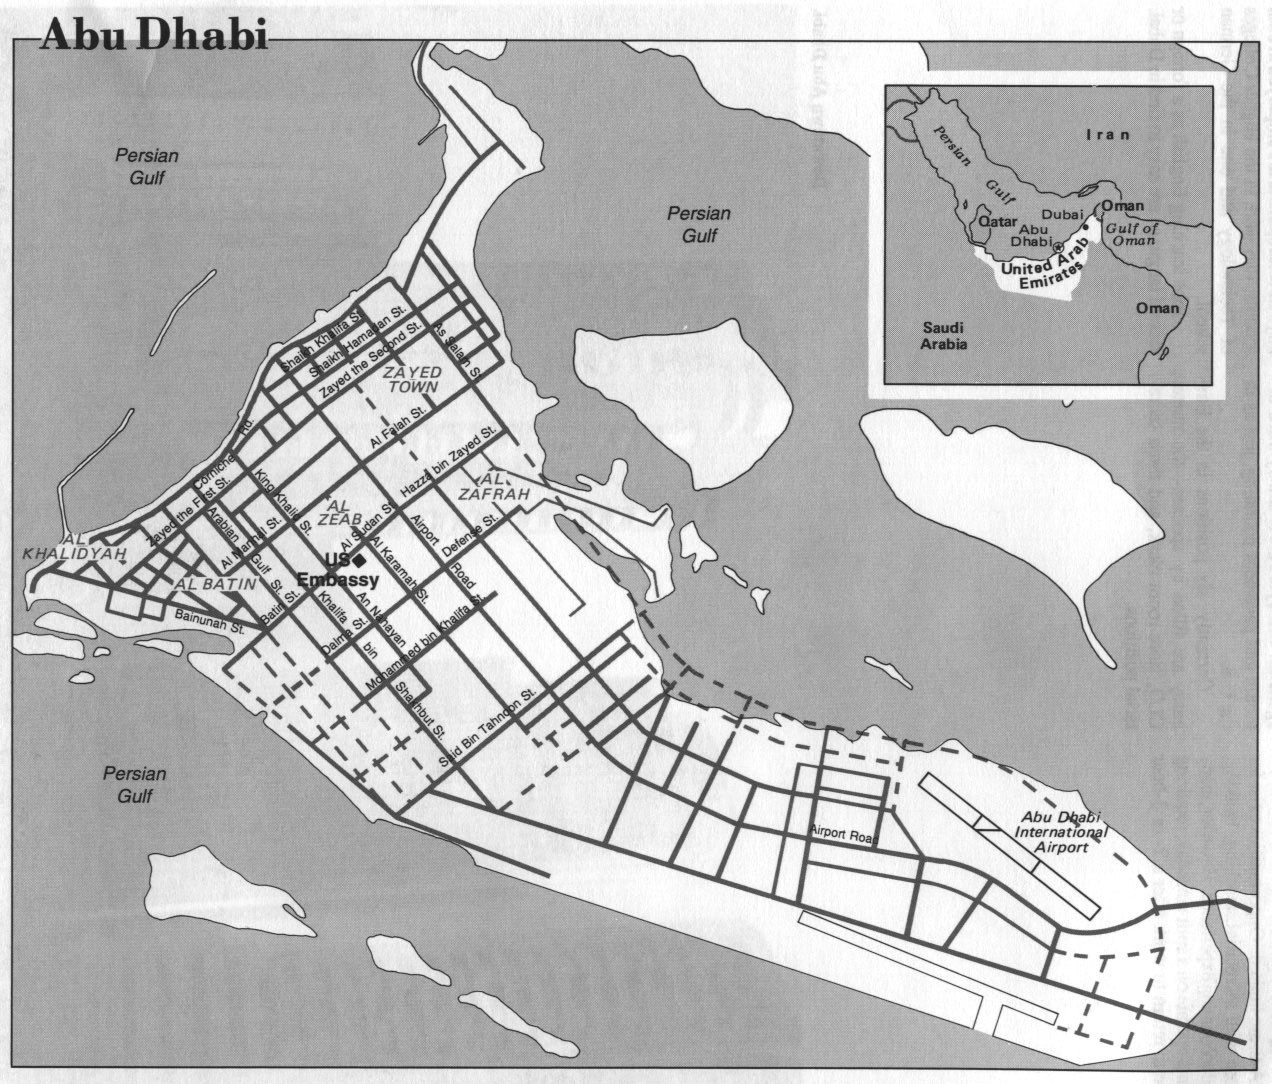 World City Maps PerryCastañeda Map Collection UT Library Online - Location map of us embassy in abu dhabi